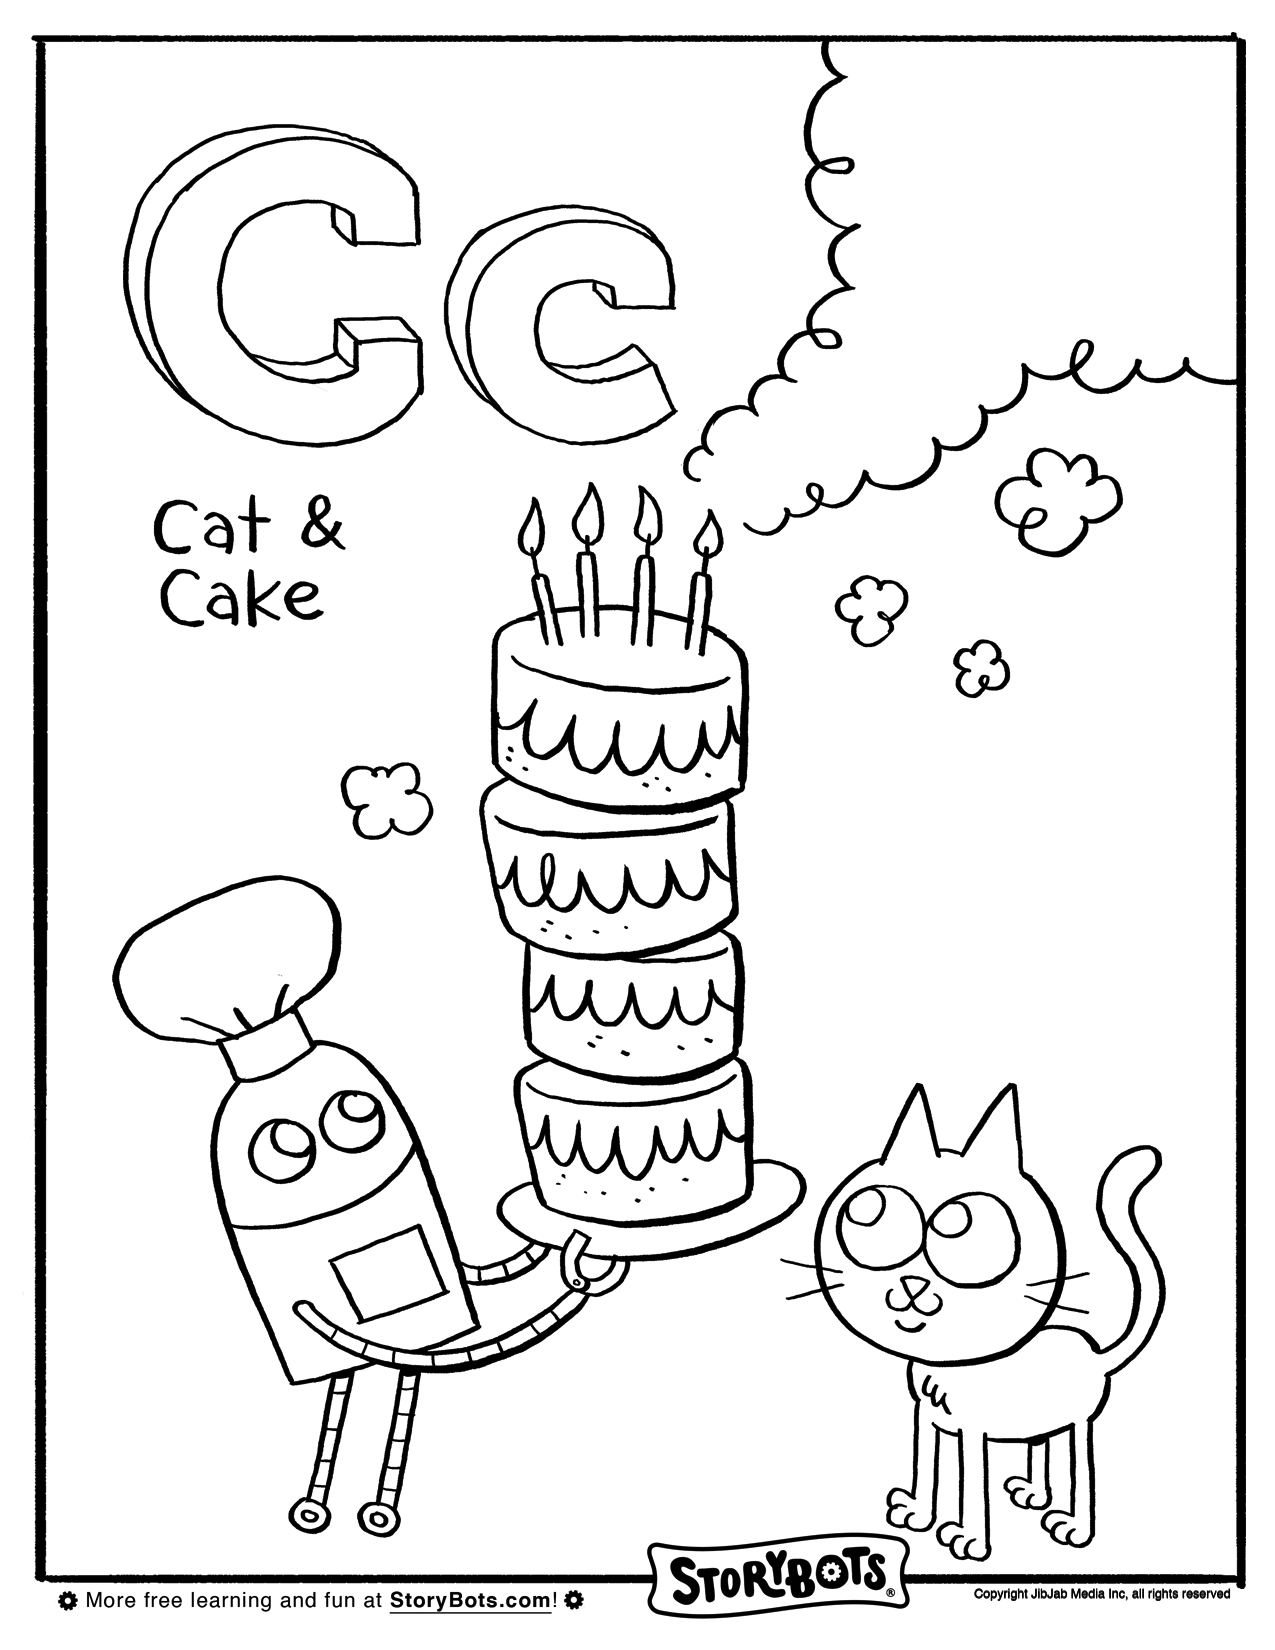 Letter C Coloring Sheet - ABC Activity Sheets - StoryBots | Aa-Dd ...